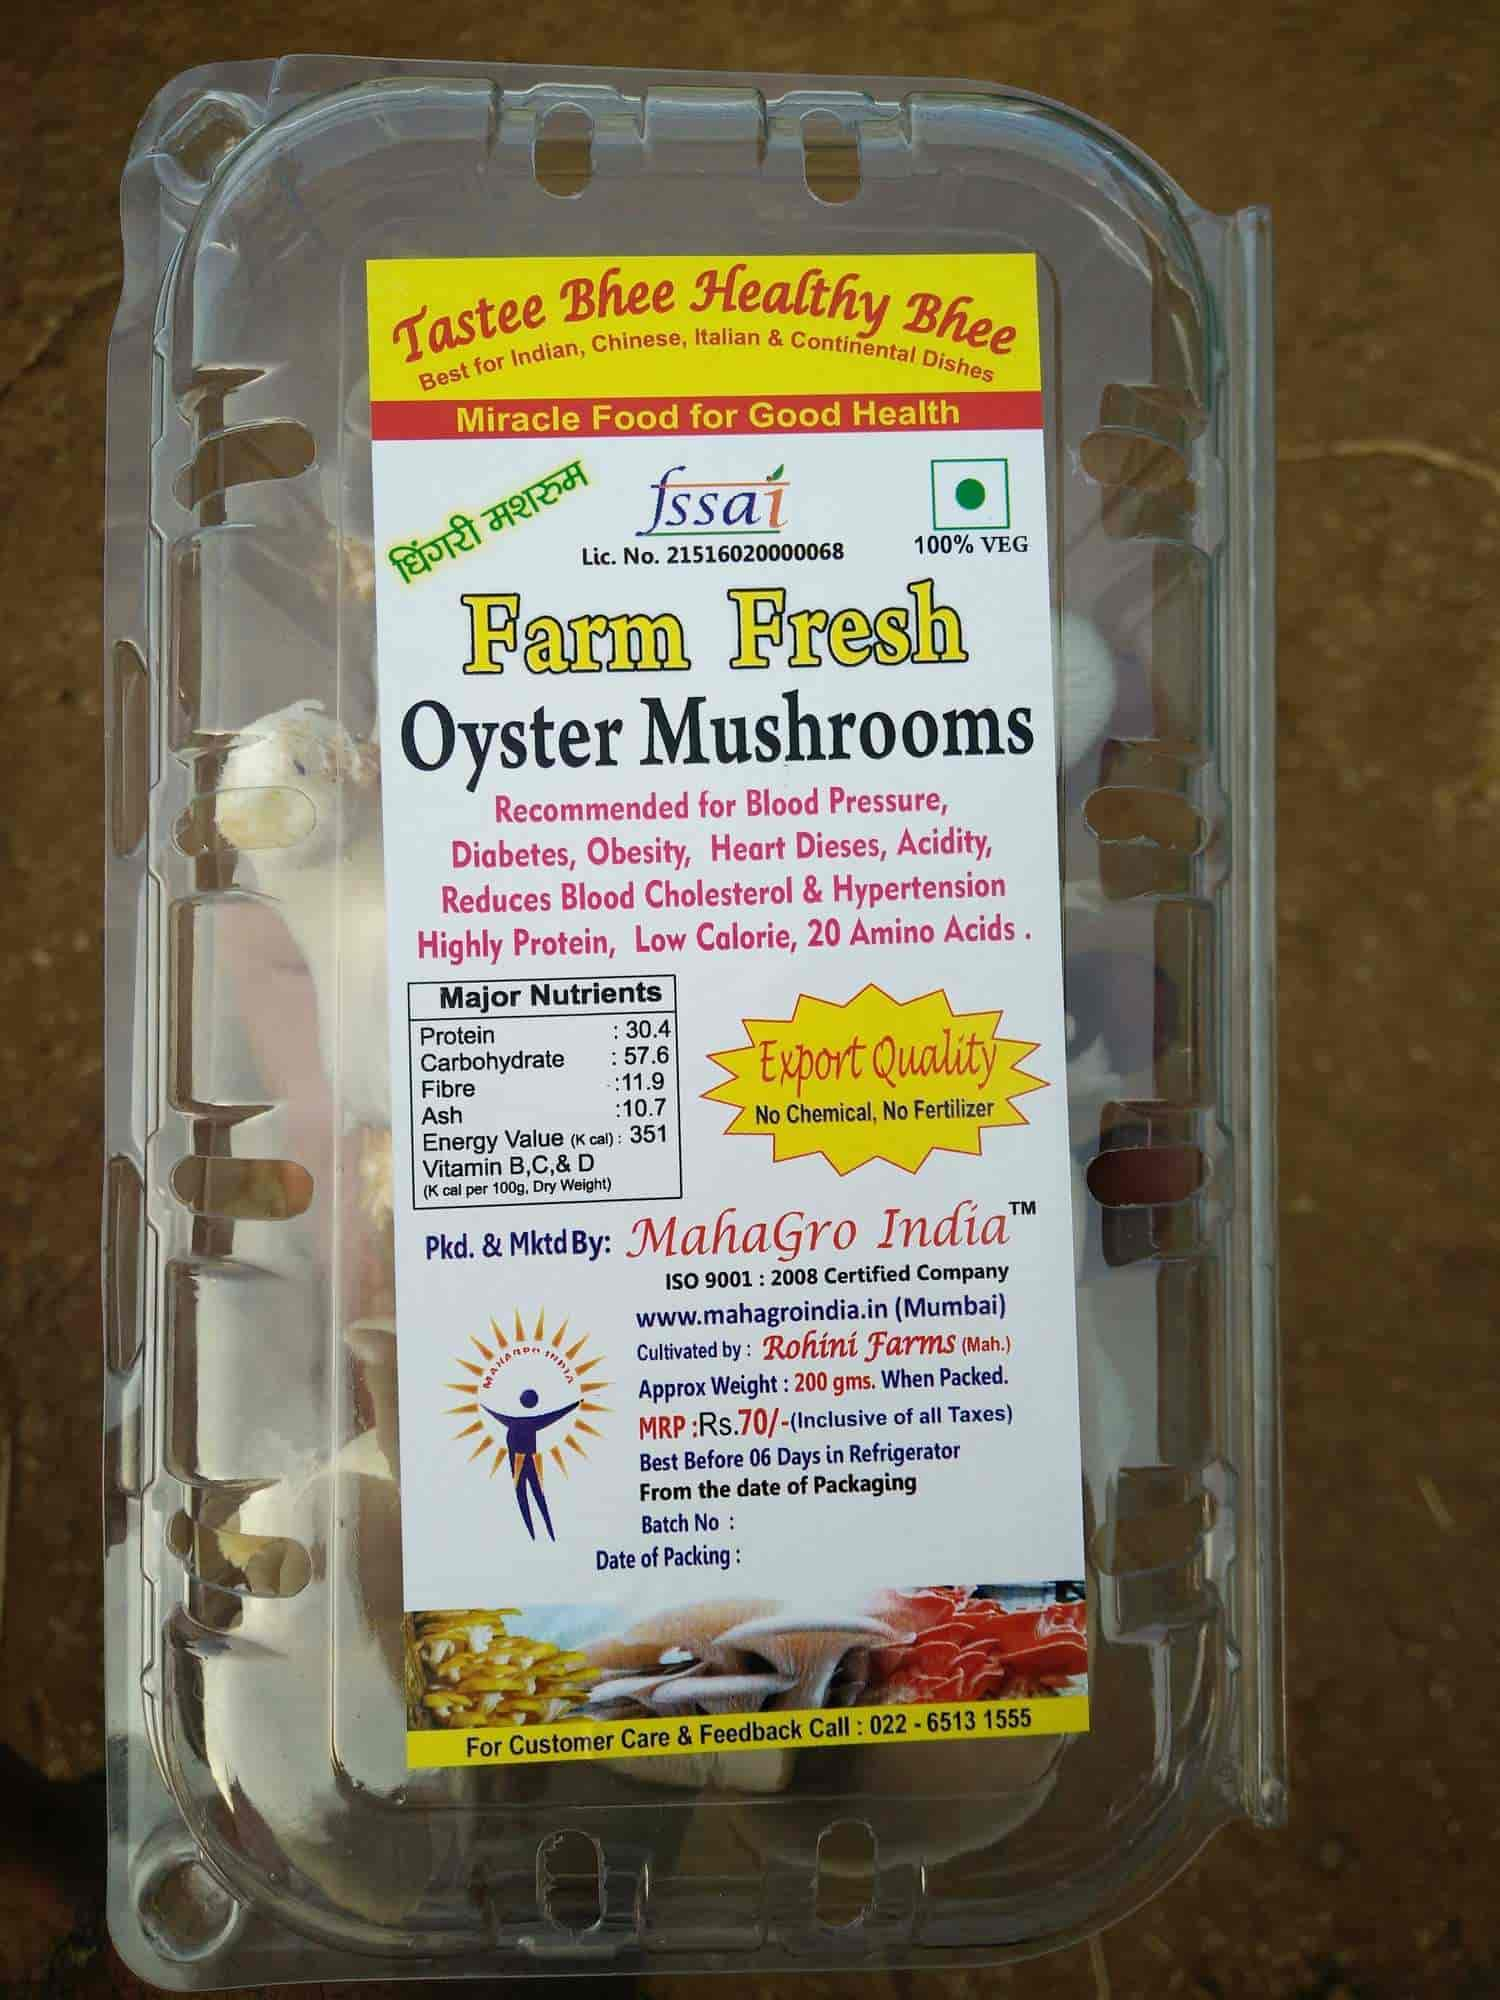 Mahagro INDIA, Santacruz East - Mushroom Cultivation Classes in